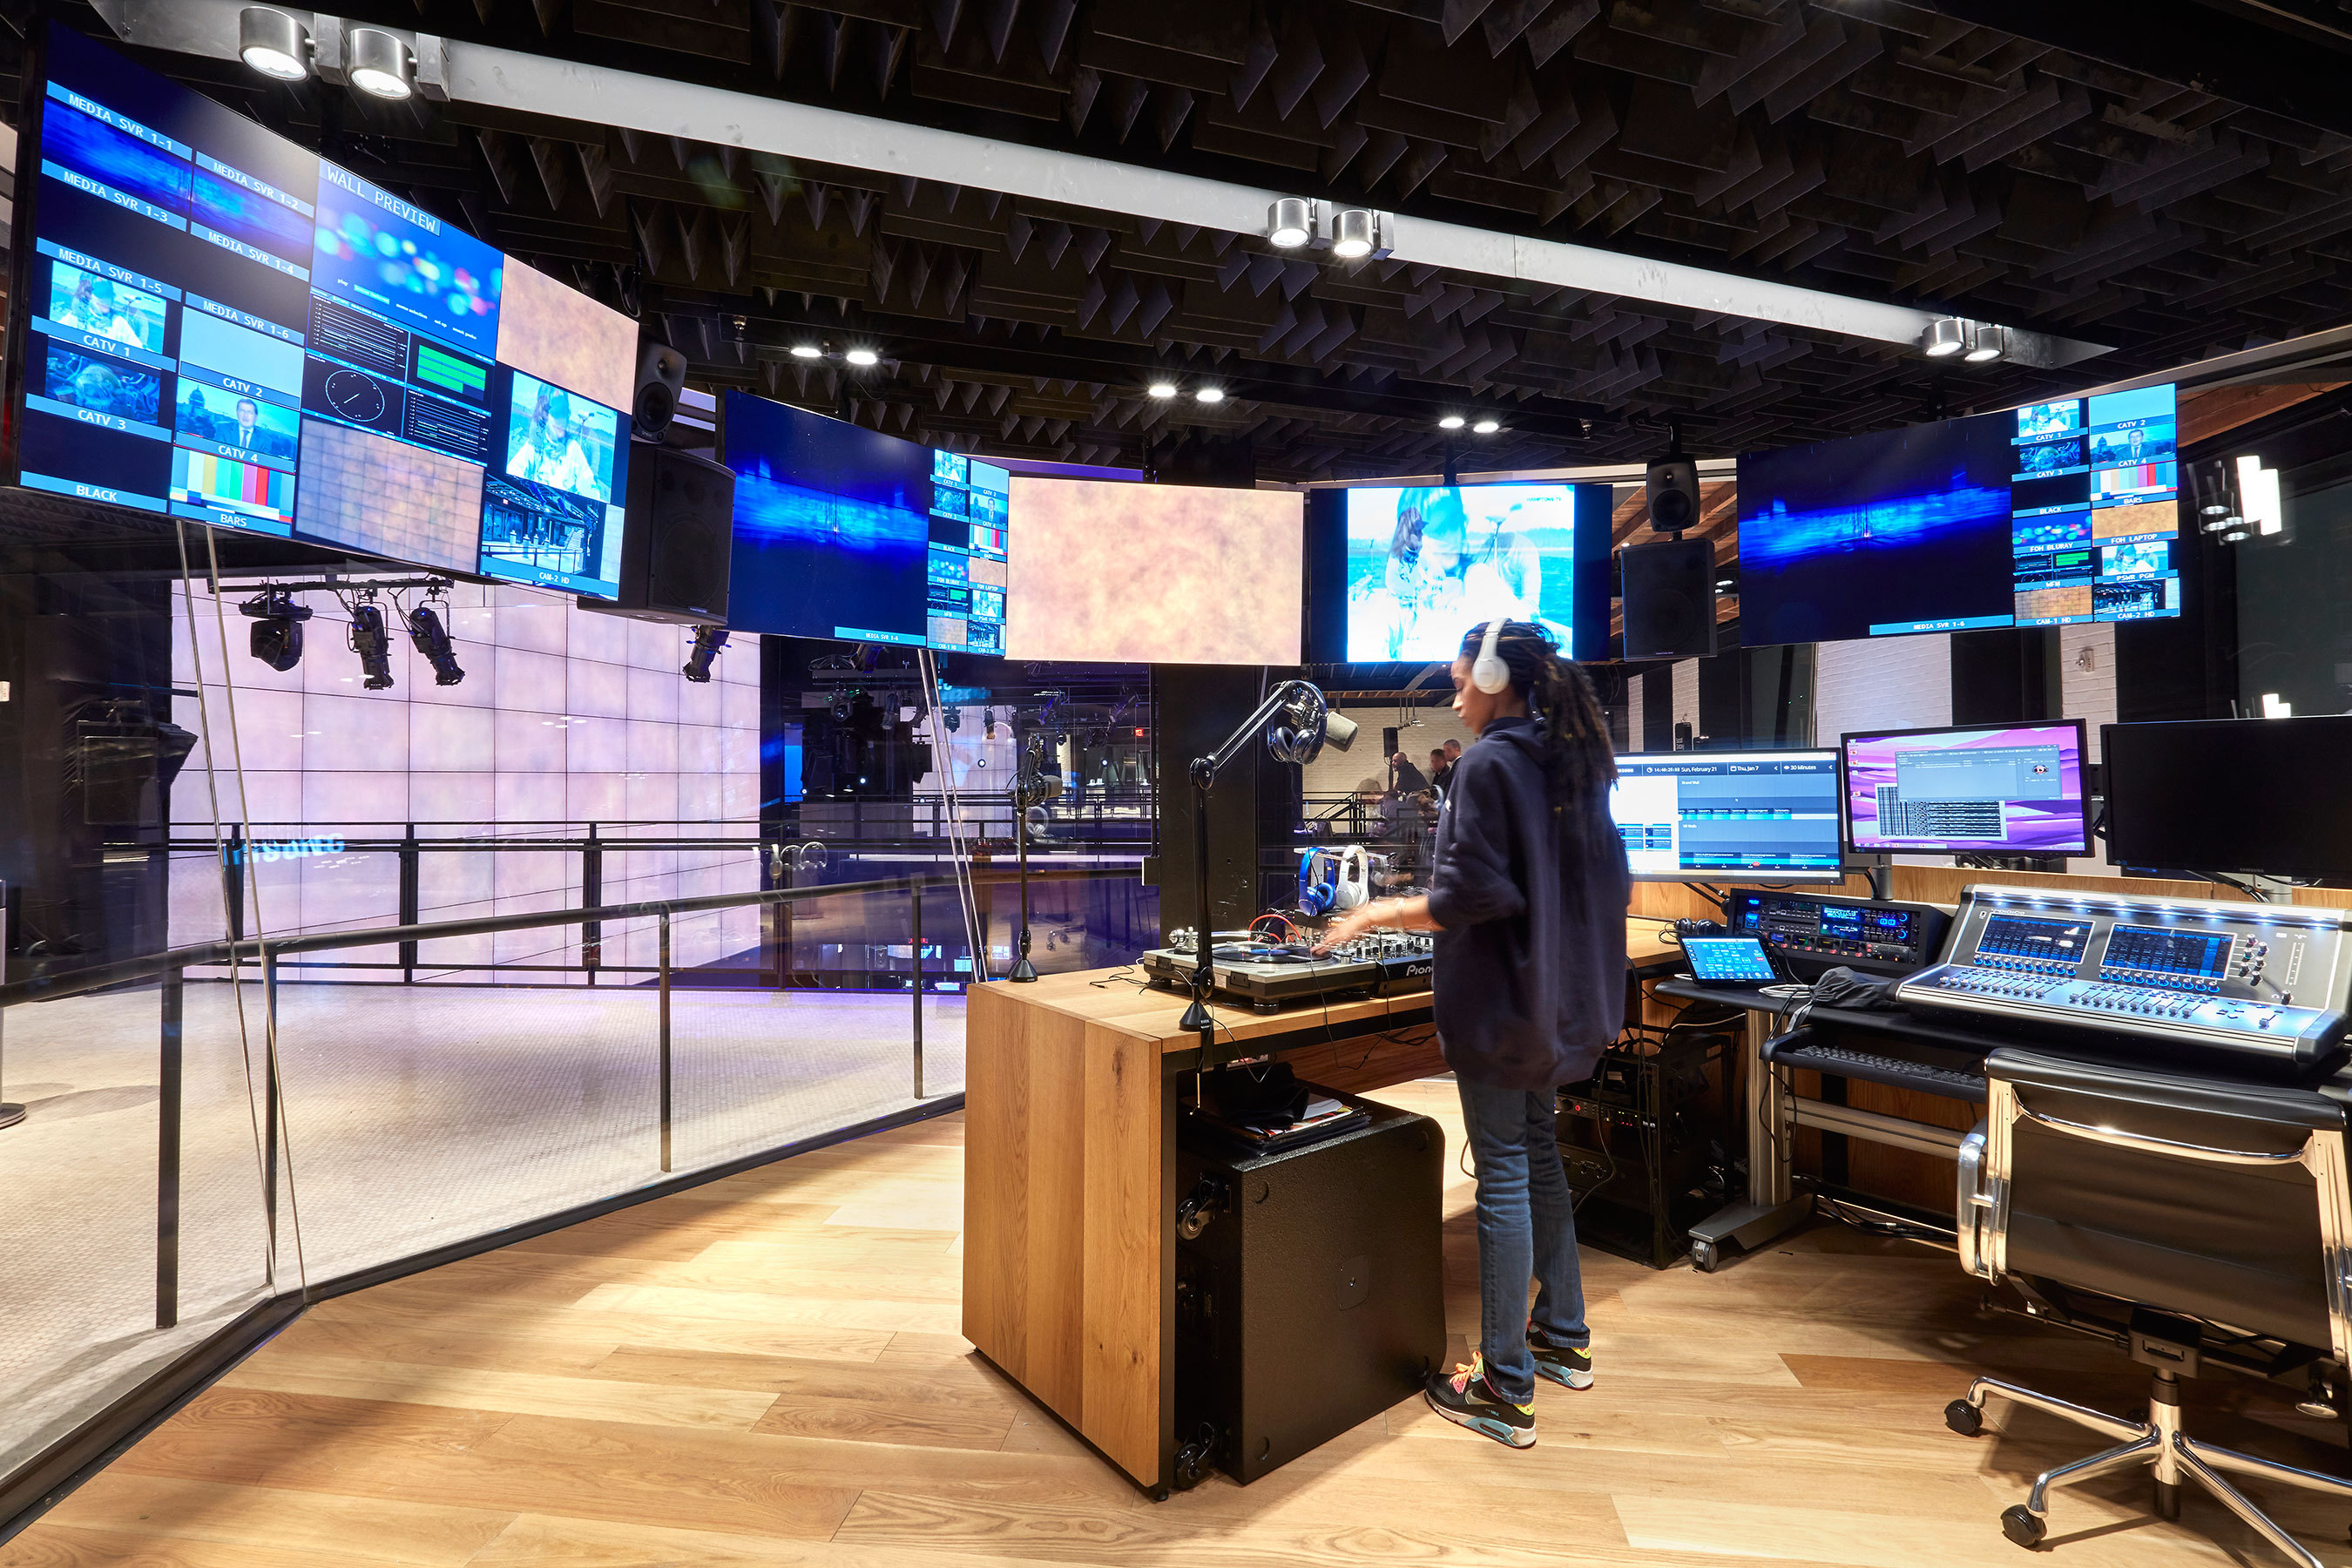 Samsung 837 Opens Its Doors In The Heart of NYC Marking the  First-of-its-Kind Cultural Destination, Digital Playground and Marketing  Center of Excellence.